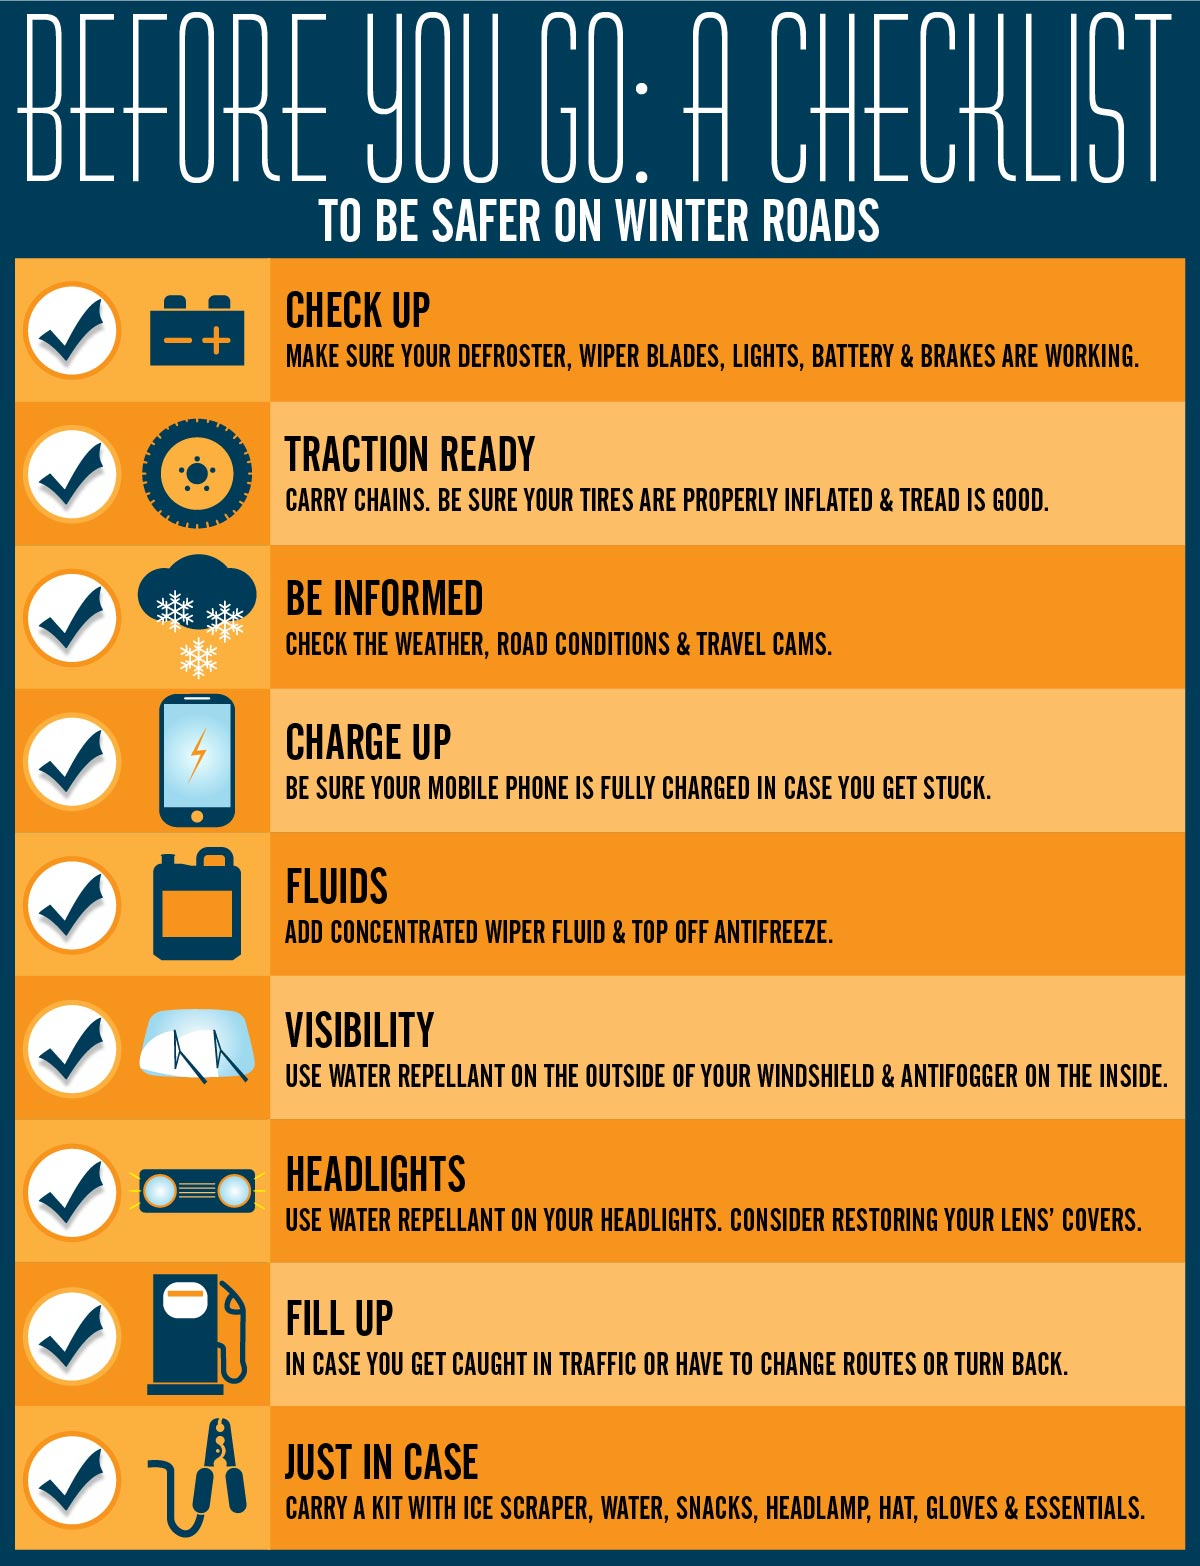 Before You Go Checklist for Winter Driving